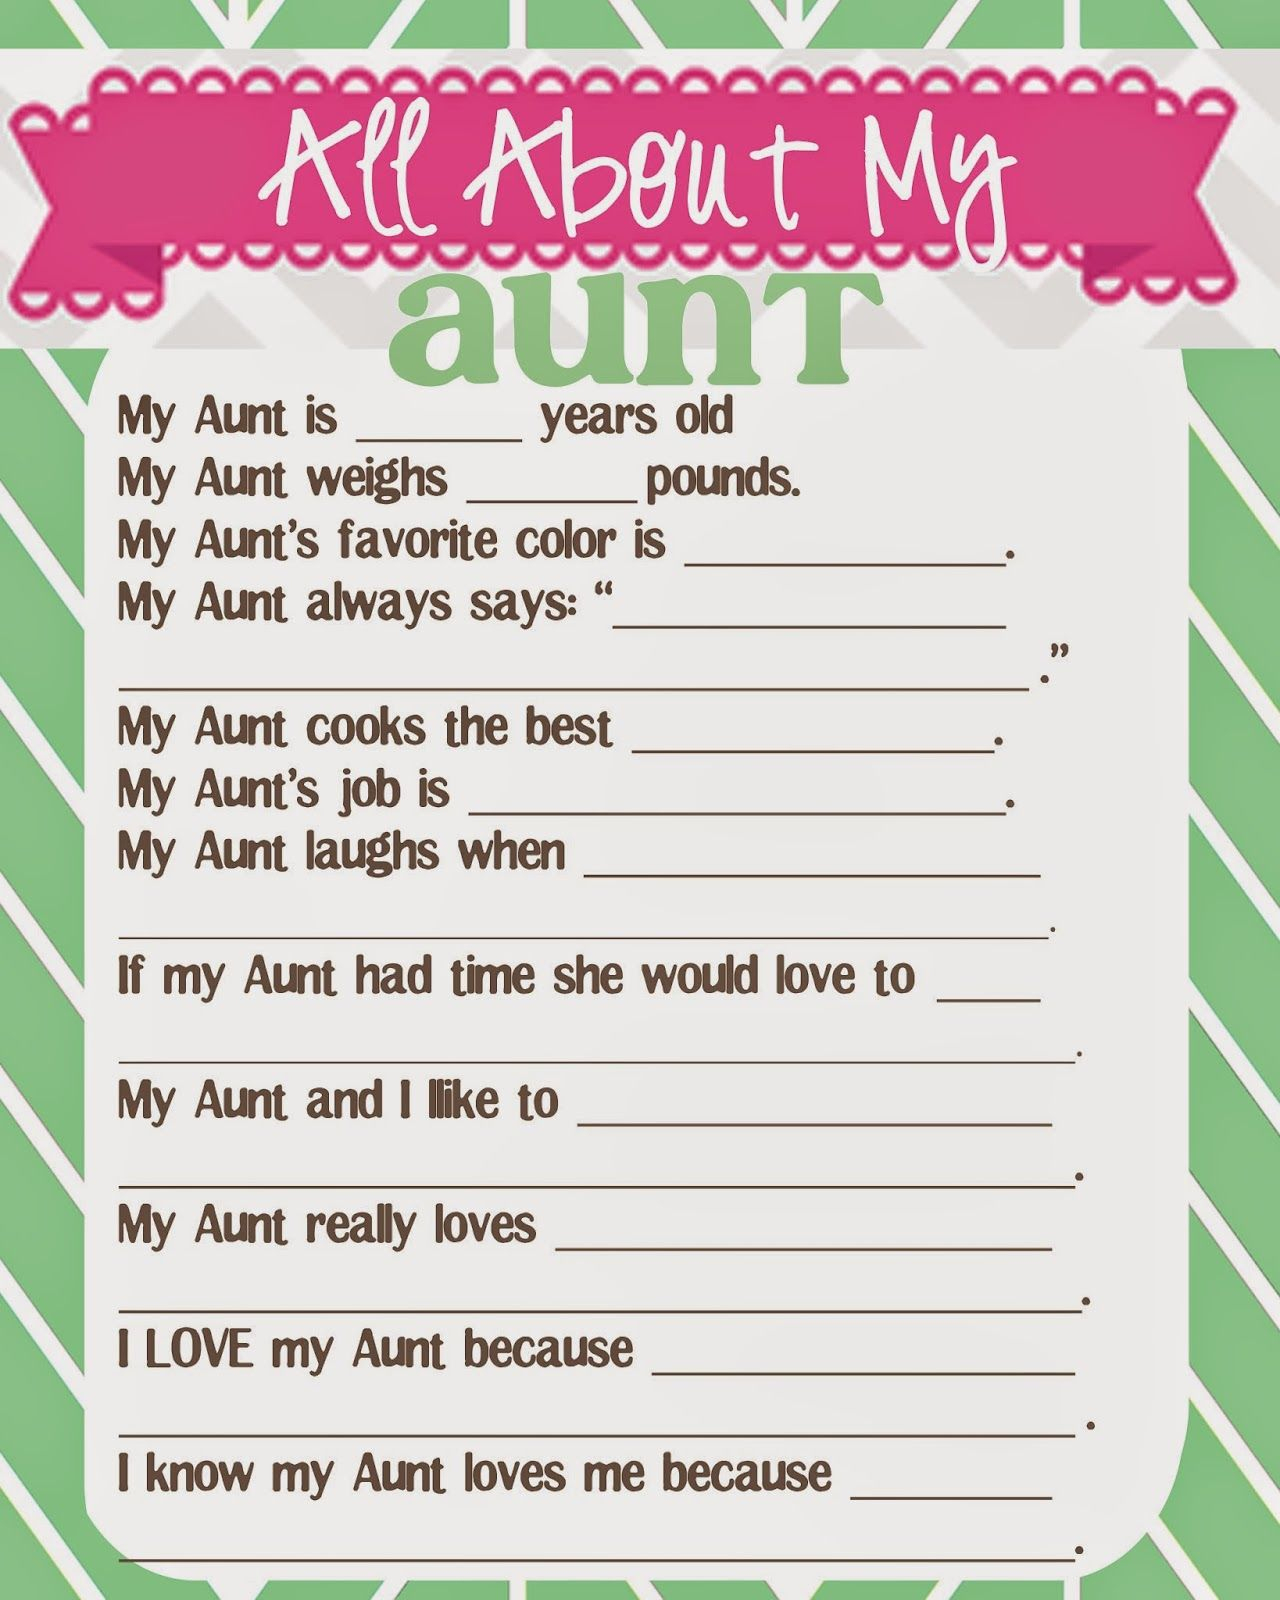 What Does The Cox Say?: Mother's Day Questionnaire And Free - Free Printable Mother's Day Questionnaire